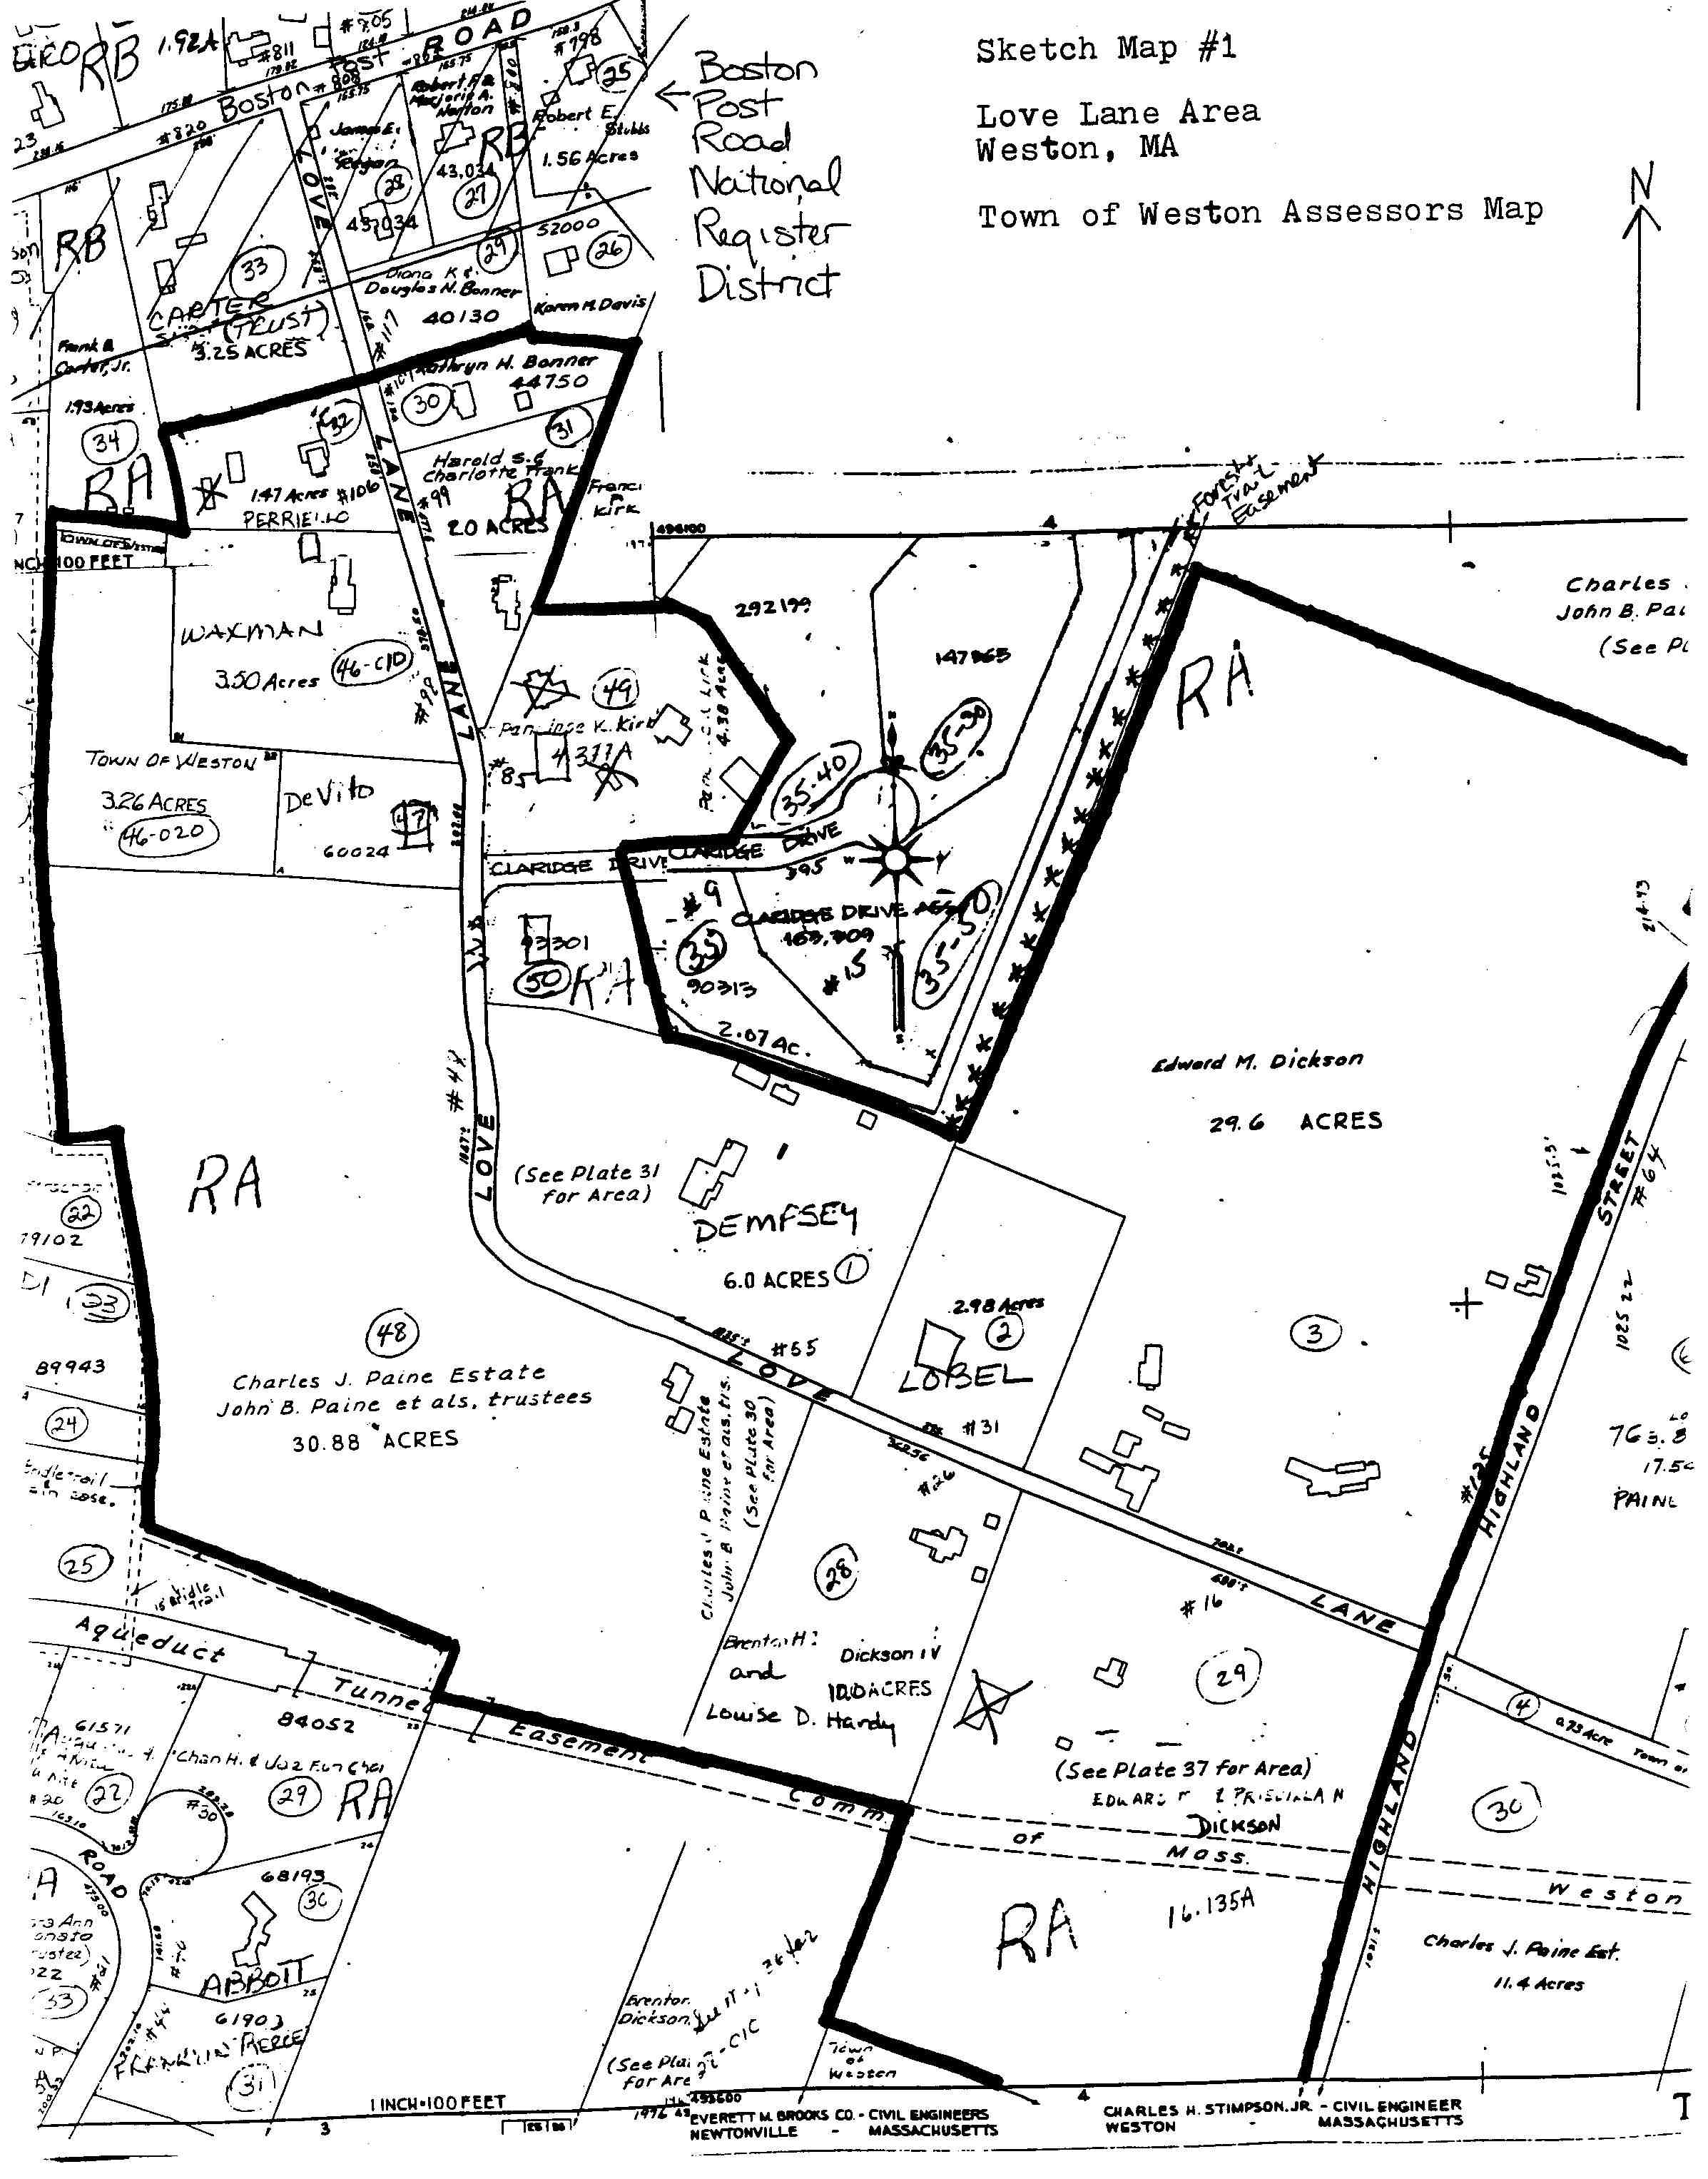 Love Lane Area map